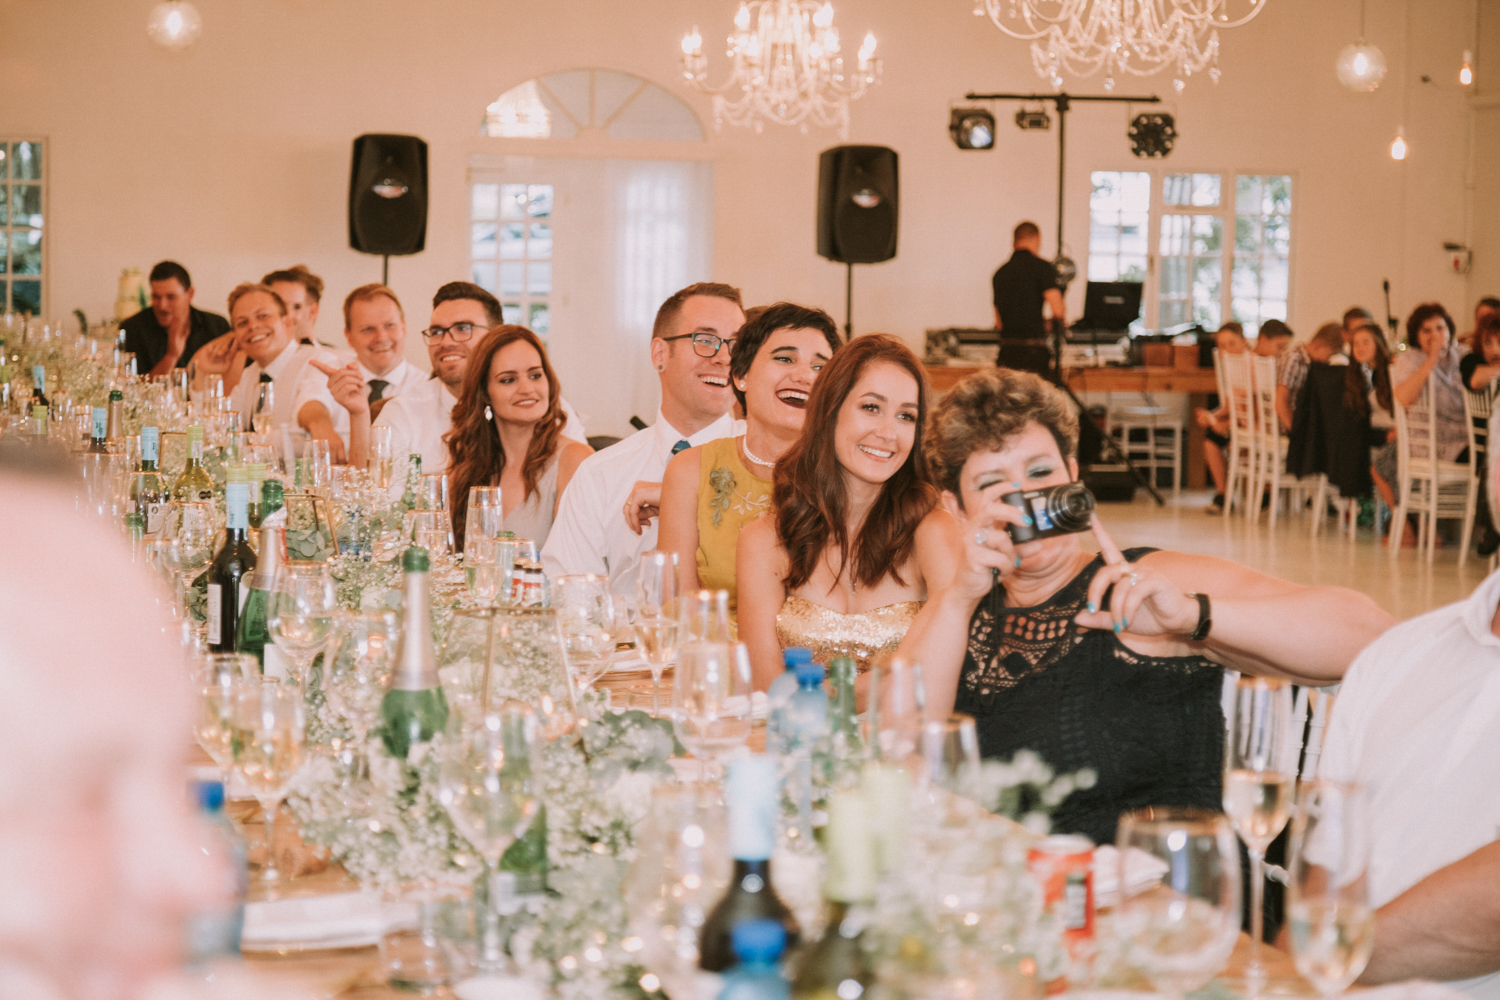 Elegant Country Wedding Cape Town - Bianca Asher Photography-74.jpg